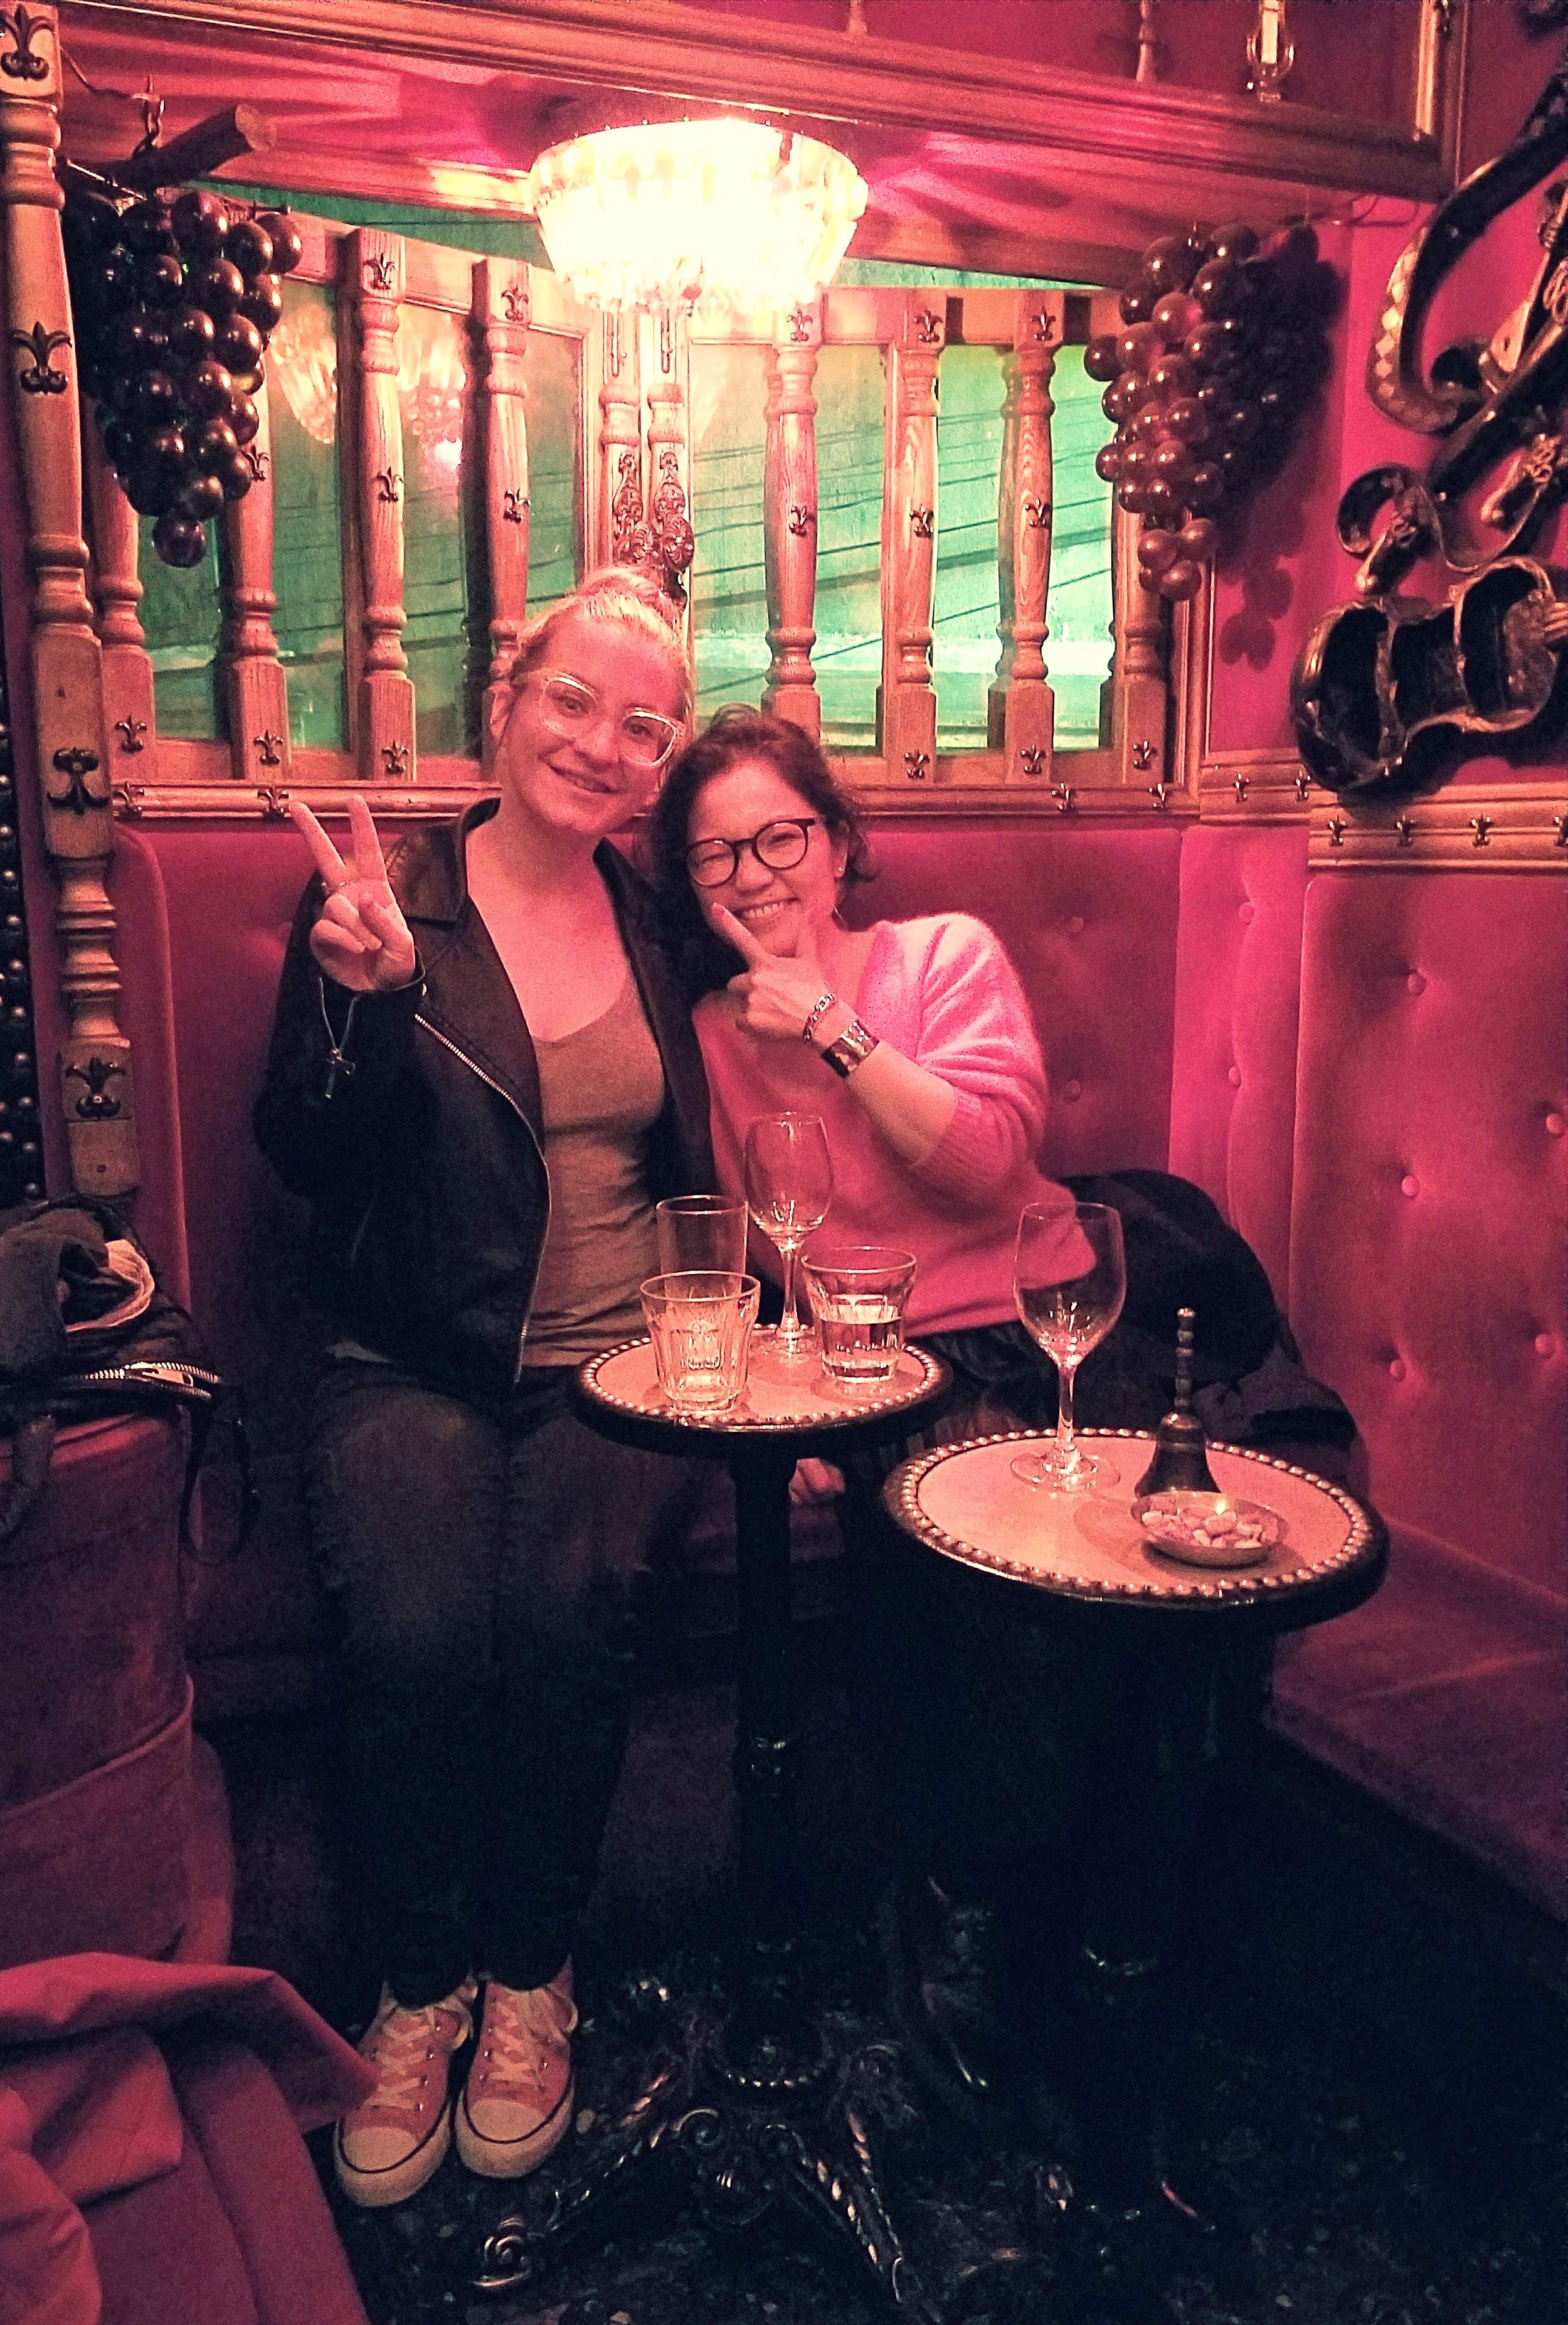 uprooted-traveler-foolproof-guide-to-tokyo-piano-bar-drunkard's-alley